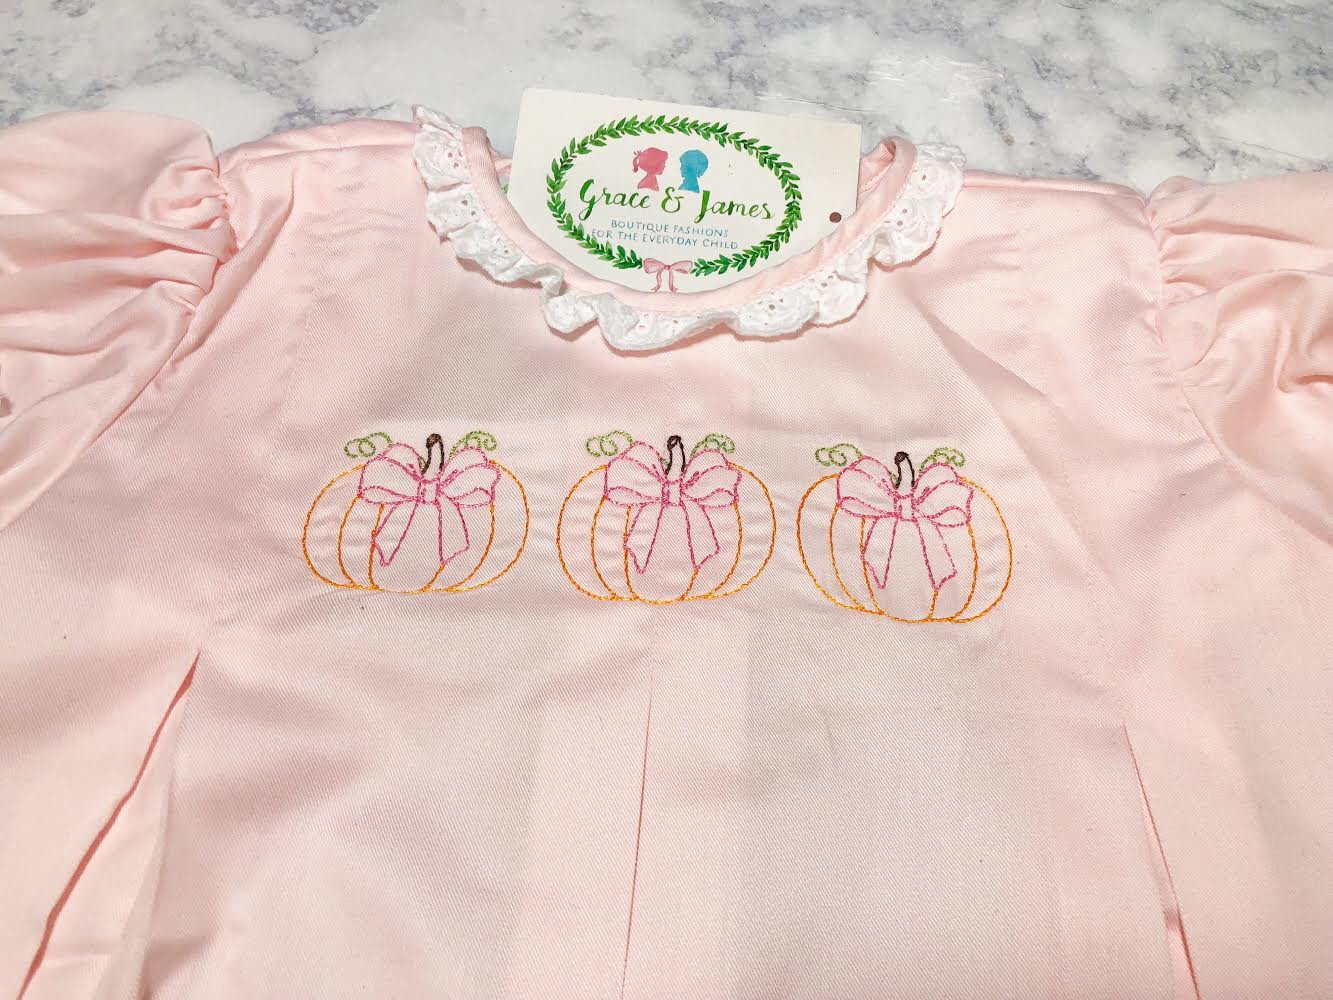 Pumpkins with Bows Embroidery